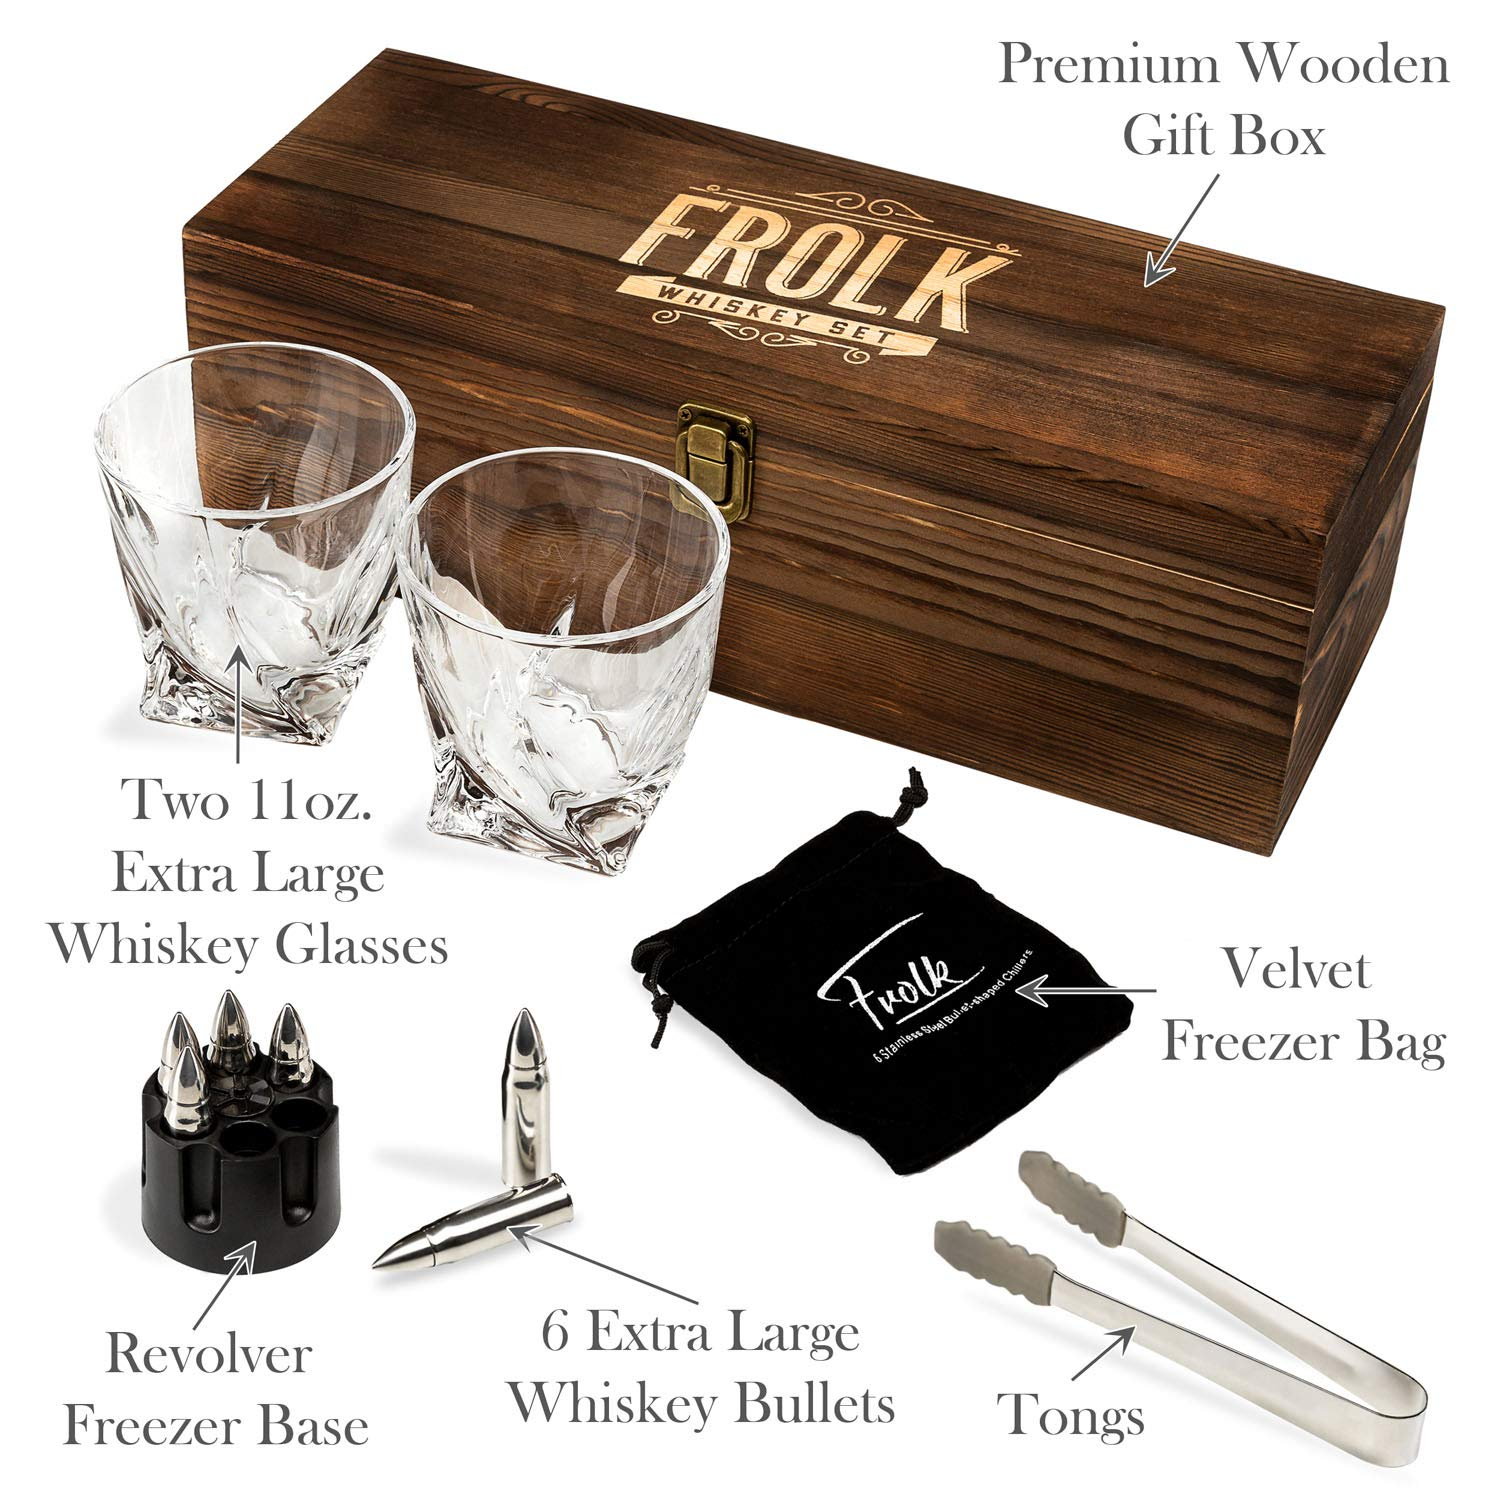 Whiskey Bullet Stones Premium Gift Set By Frolk, Set Of 6 Extra Large Stainless Steel Whiskey Stones, 2 Large Twisted Whiskey Glasses (11 oz), Freezer Base, Velvet Pouch & Tongs In Novelty Wooden Box by Frolk (Image #2)